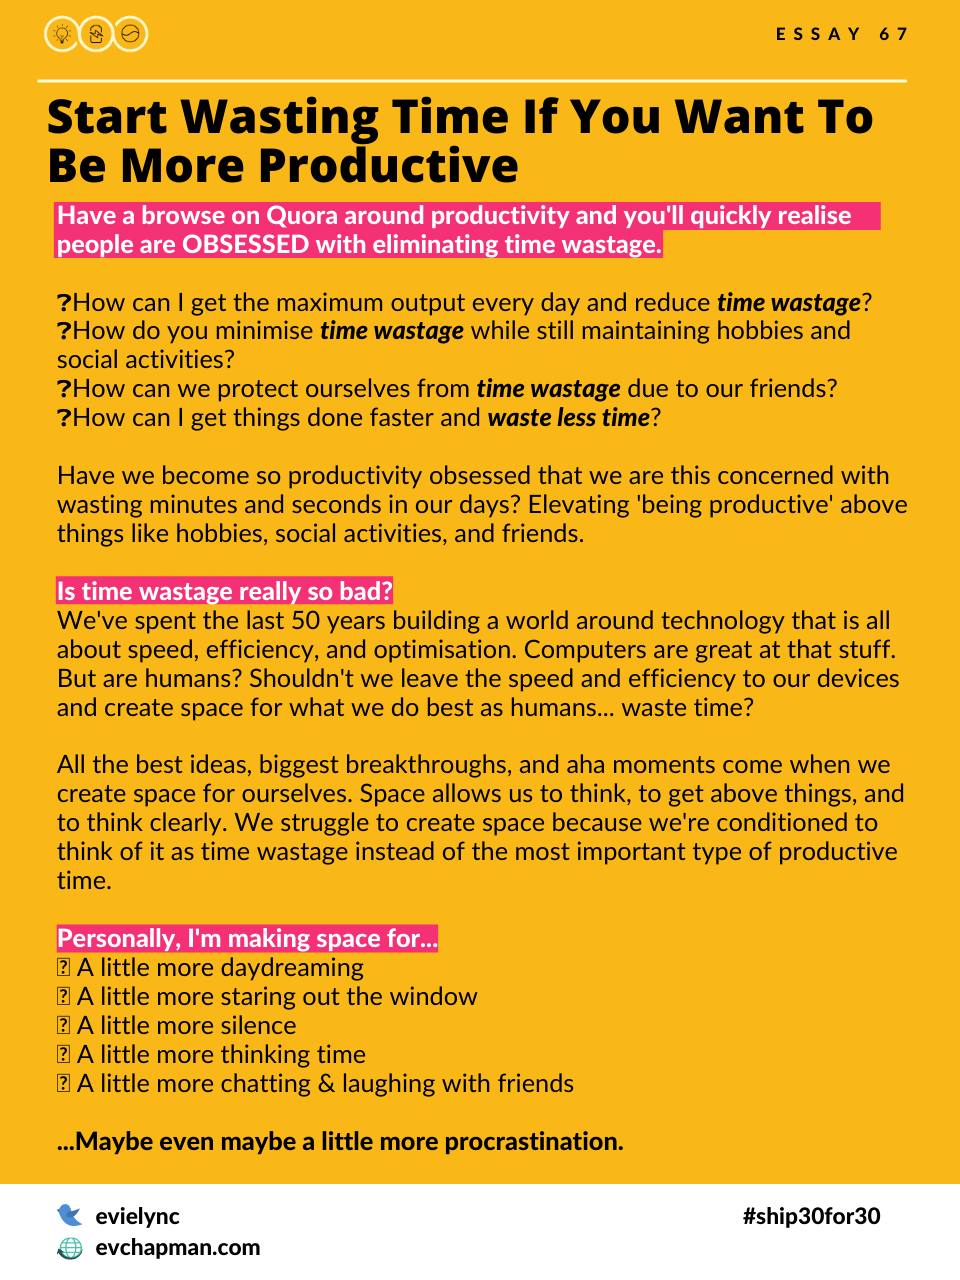 Start Wasting Time If You Want To Be More Productive